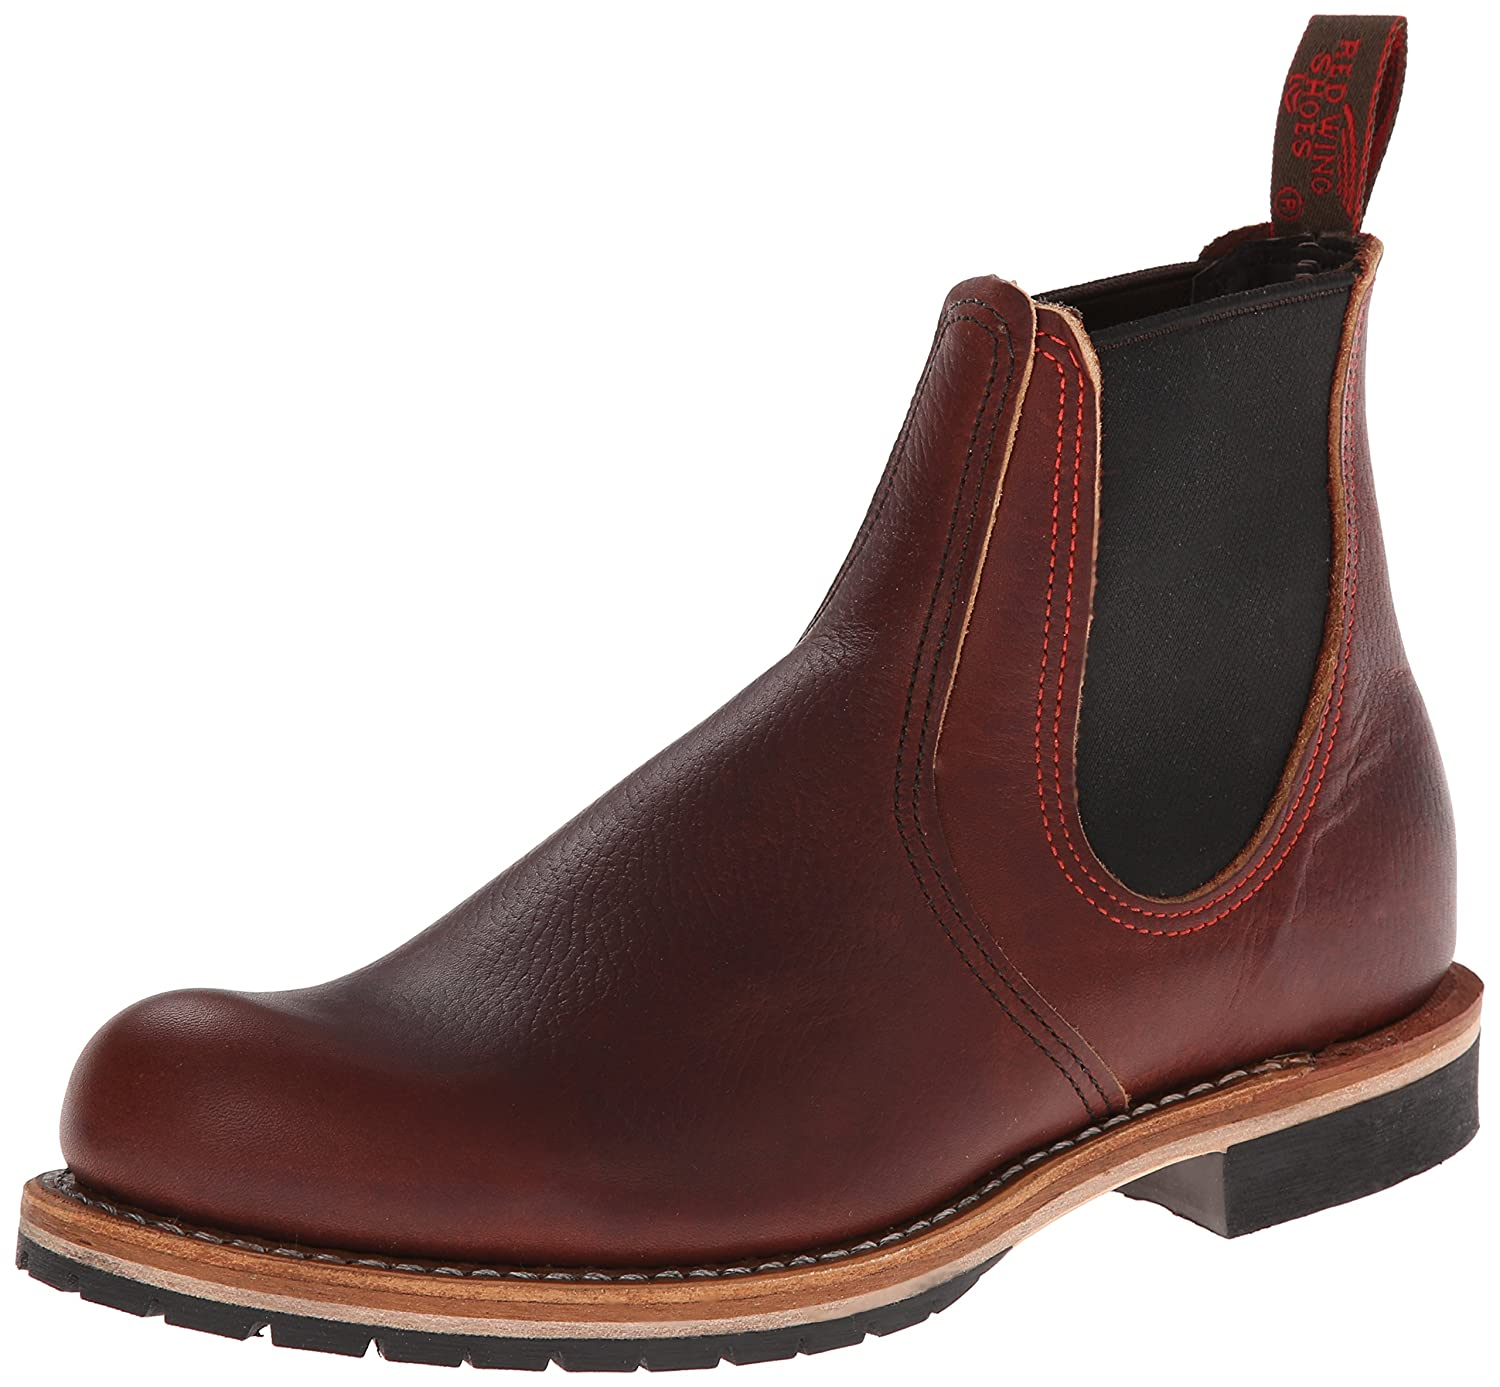 TALLA 43 EU. Red Wing Shoes Chelsea Rancher, Botas para hombre